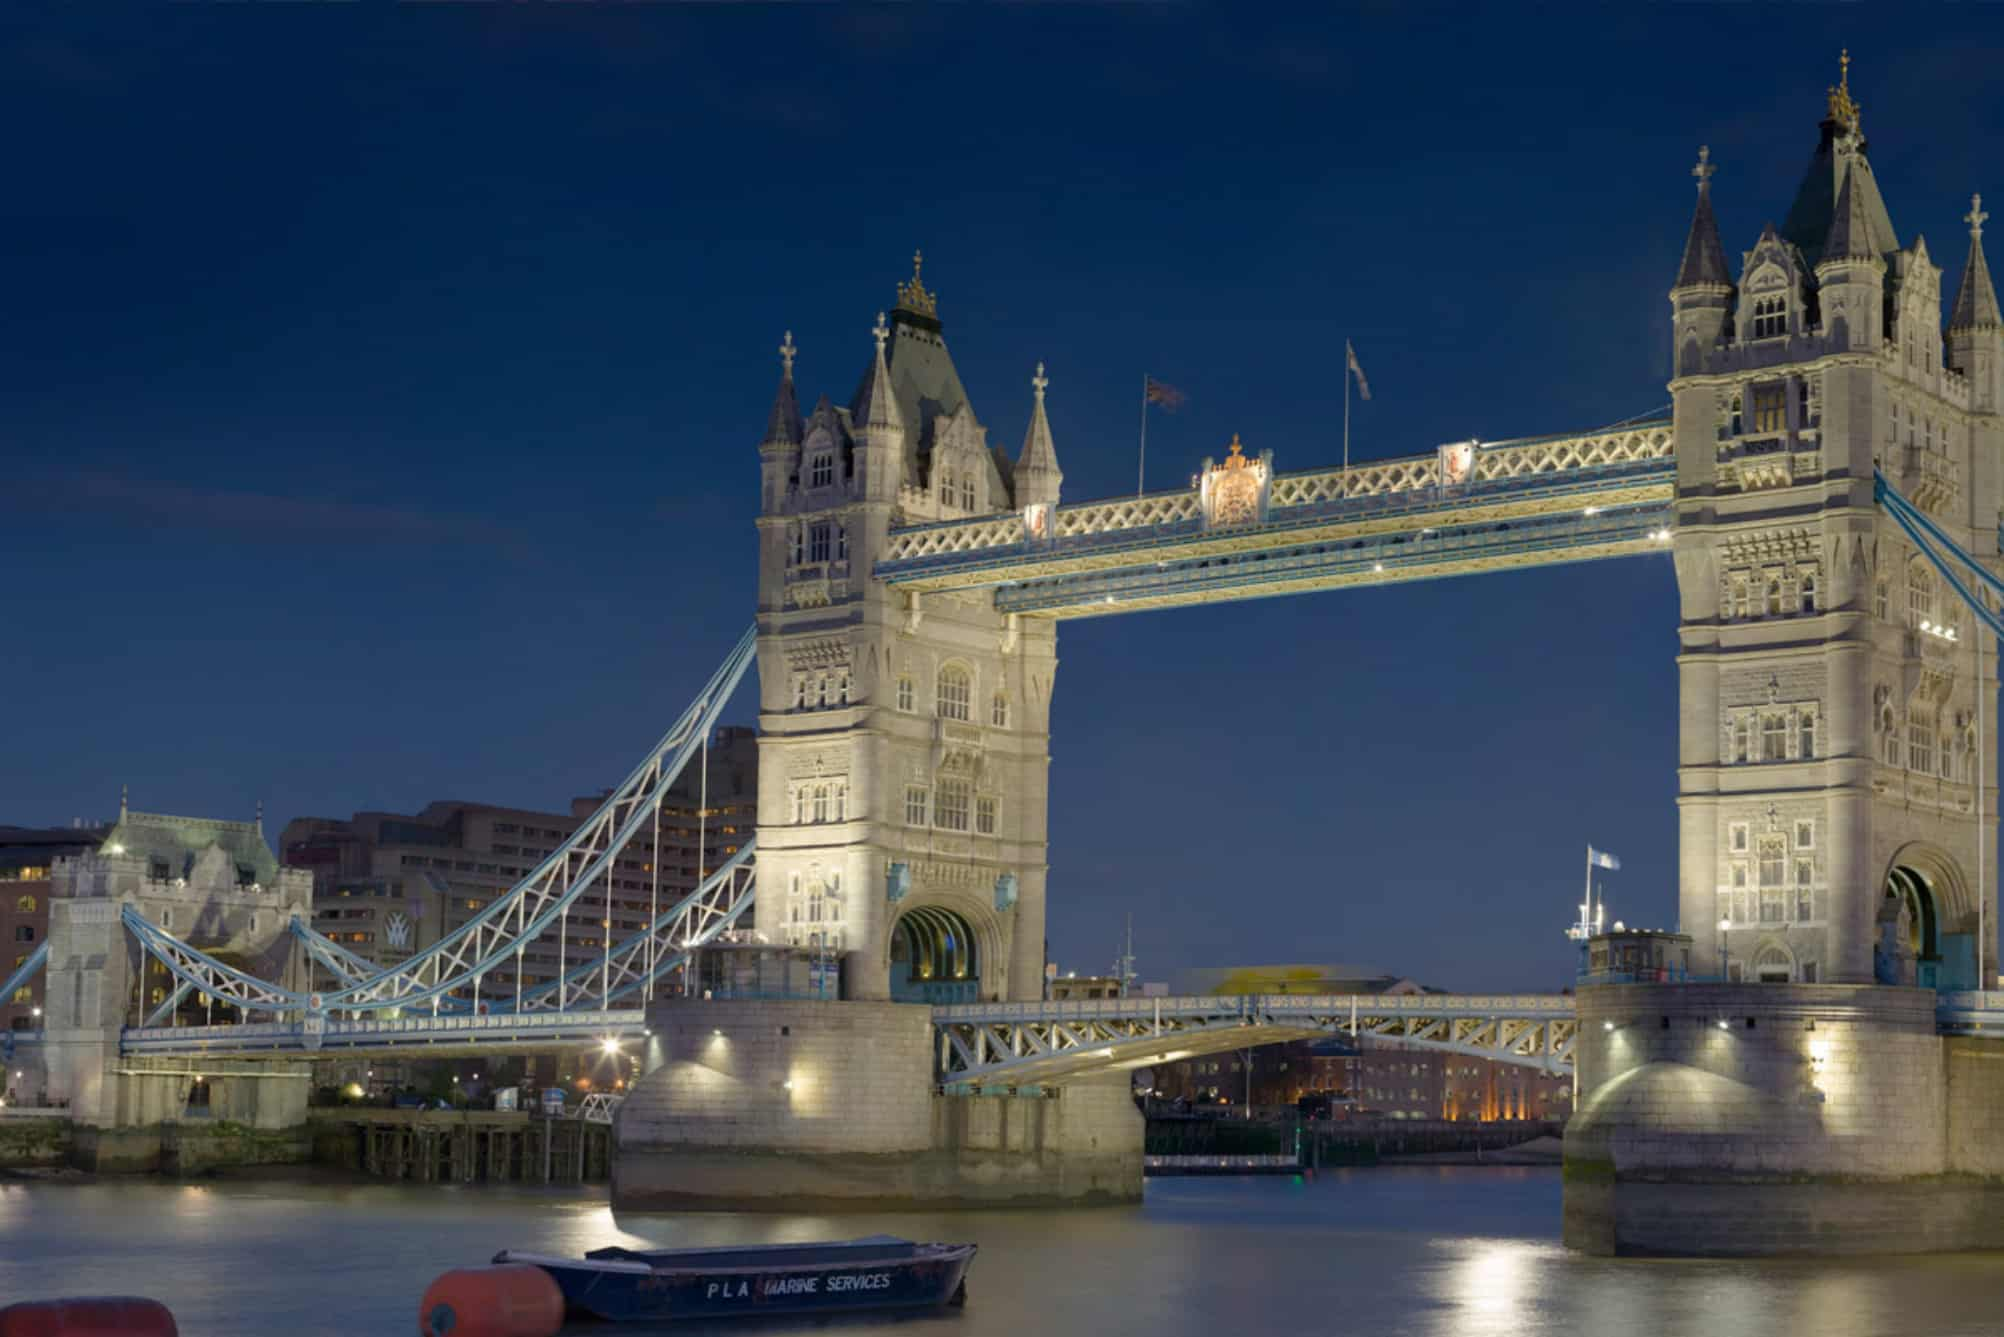 Tower Bridge Venue Hire